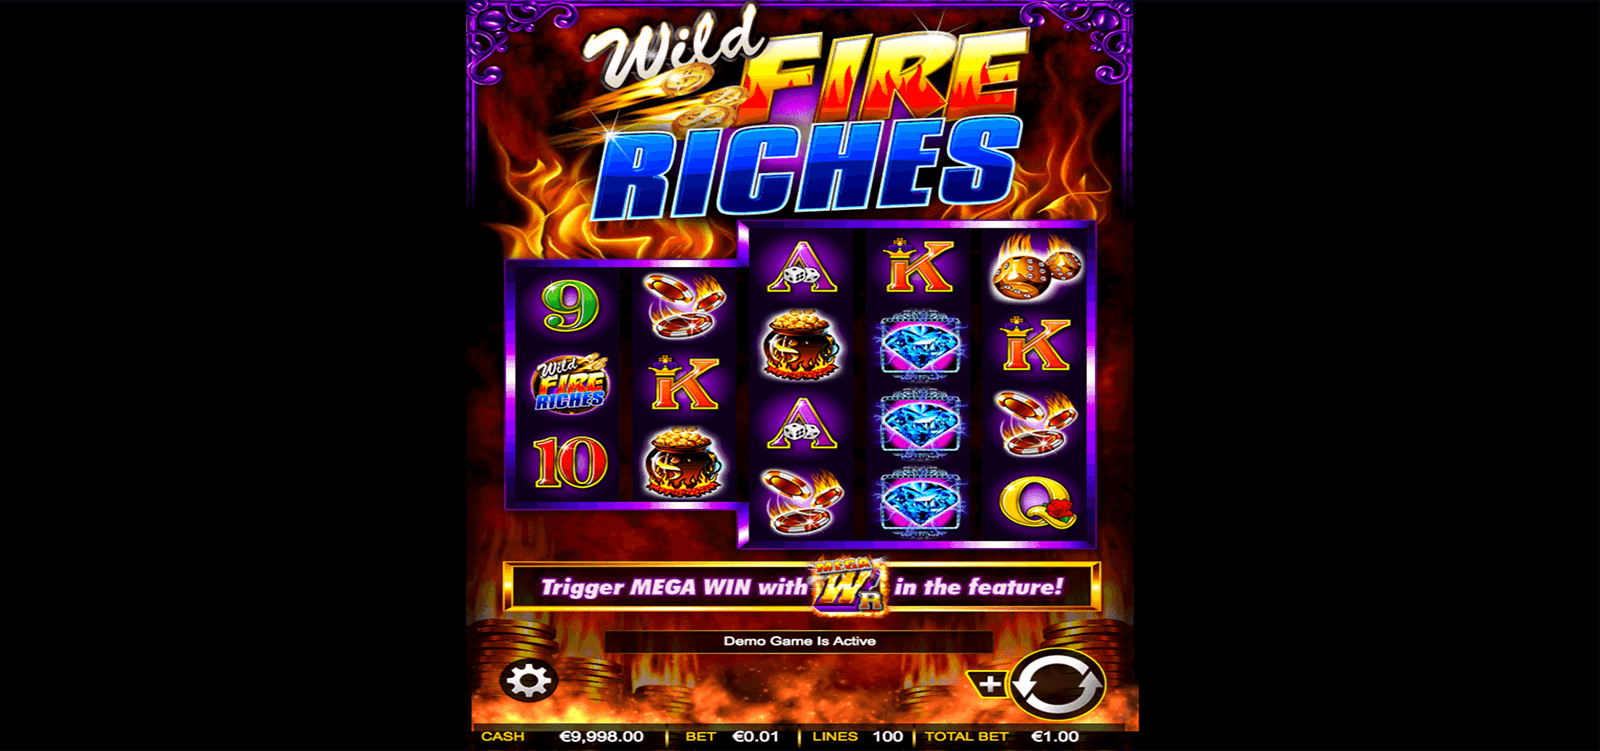 Life of Riches Slot - Try this Online Game for Free Now